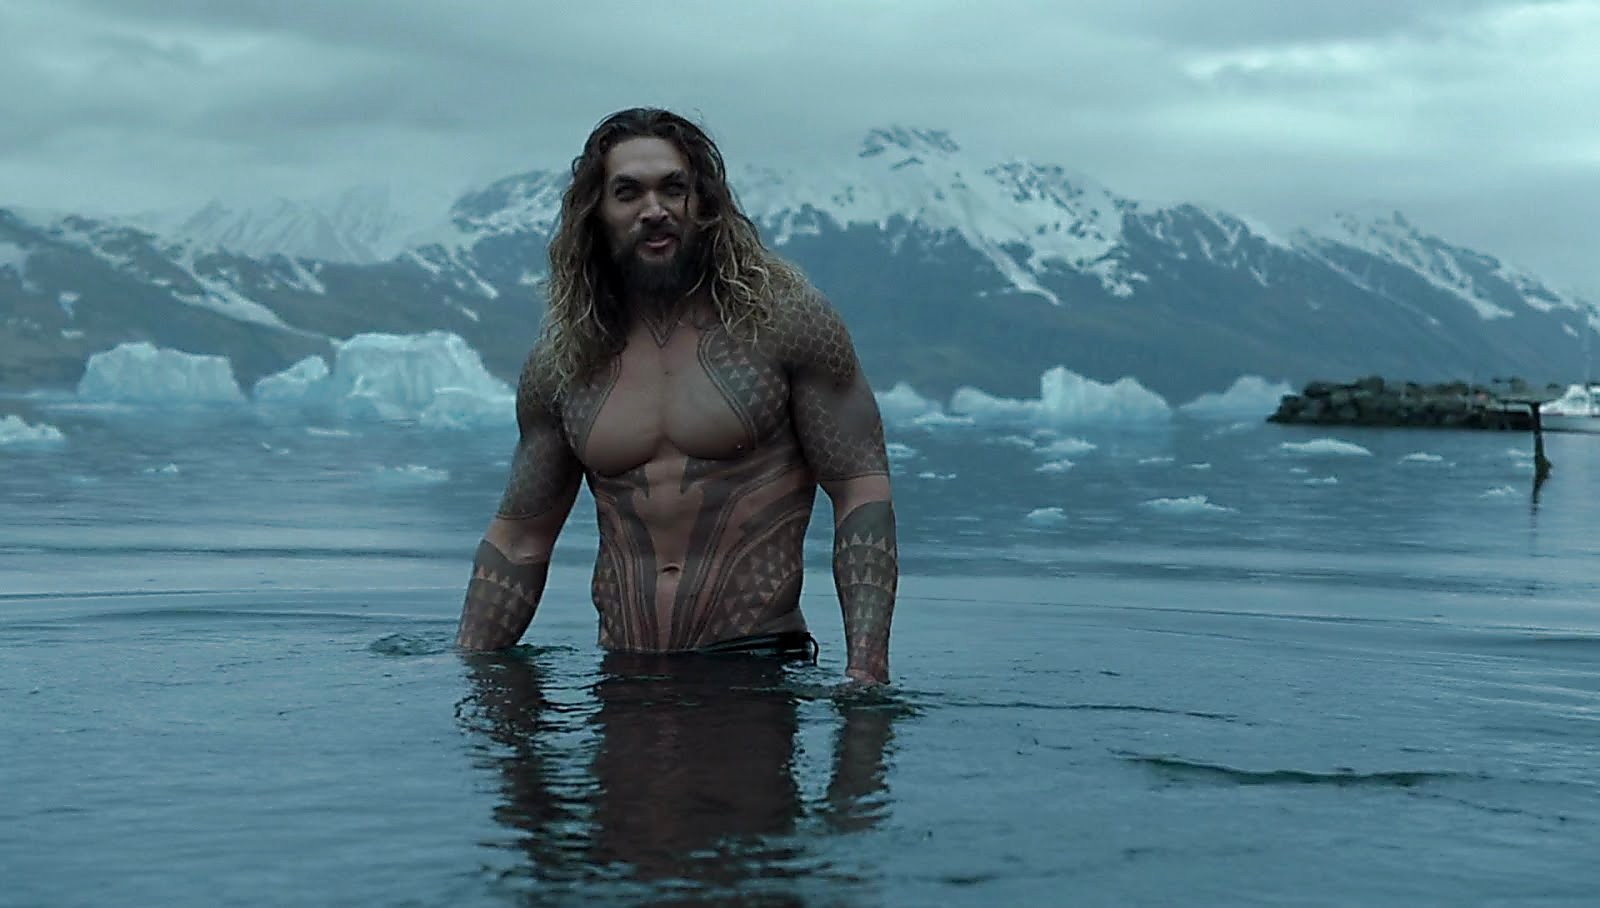 Jason Momoa sexy shirtless scene February 13, 2018, 11am